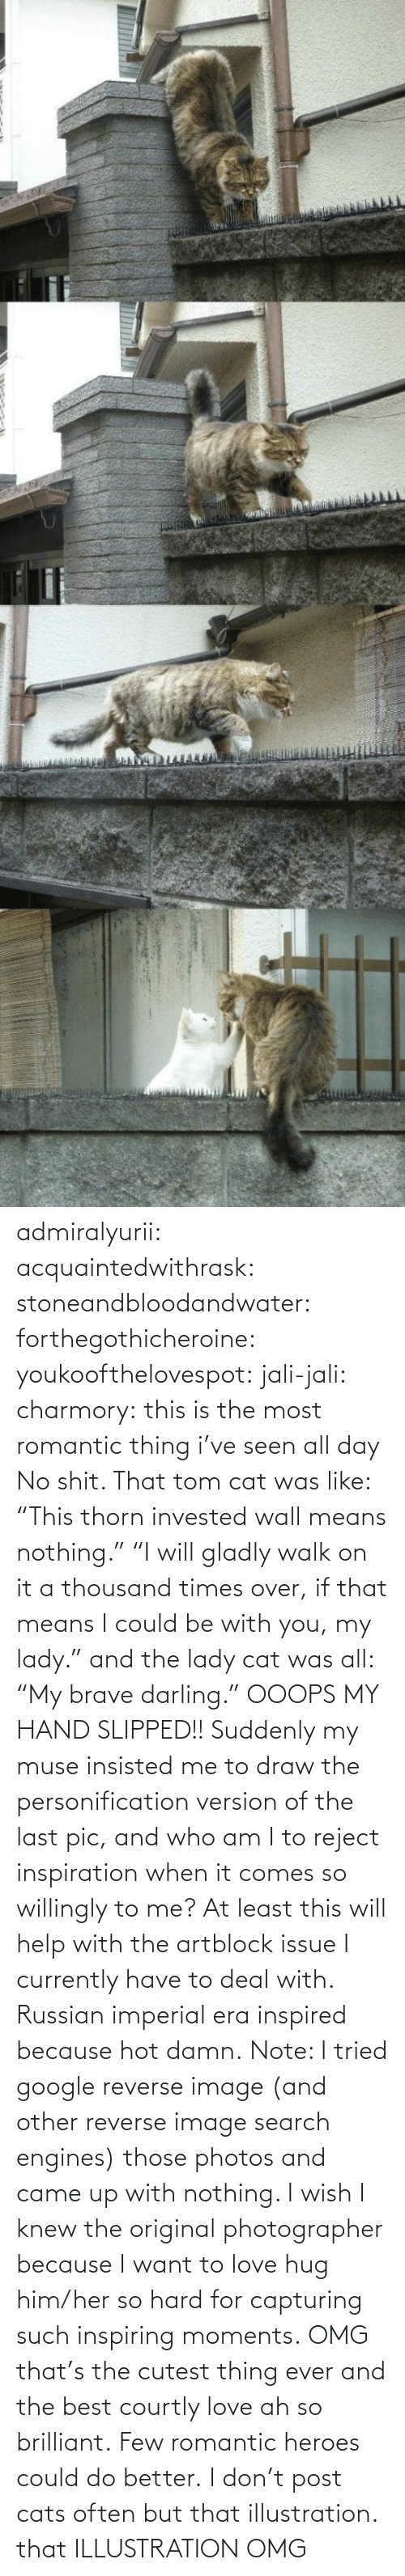 "those: admiralyurii: acquaintedwithrask:  stoneandbloodandwater:  forthegothicheroine:  youkoofthelovespot:  jali-jali:  charmory:  this is the most romantic thing i've seen all day  No shit. That tom cat was like: ""This thorn invested wall means nothing."" ""I will gladly walk on it a thousand times over, if that means I could be with you, my lady."" and the lady cat was all: ""My brave darling."" OOOPS MY HAND SLIPPED!!  Suddenly my muse insisted me to draw the personification version of the last pic, and who am I to reject inspiration when it comes so willingly to me? At least this will help with the artblock issue I currently have to deal with. Russian imperial era inspired because hot damn. Note: I tried google reverse image (and other reverse image search engines) those photos and came up with nothing. I wish I knew the original photographer because I want to love hug him/her so hard for capturing such inspiring moments.  OMG that's the cutest thing ever and the best courtly love ah so brilliant.  Few romantic heroes could do better.  I don't post cats often but that illustration.  that ILLUSTRATION    OMG"